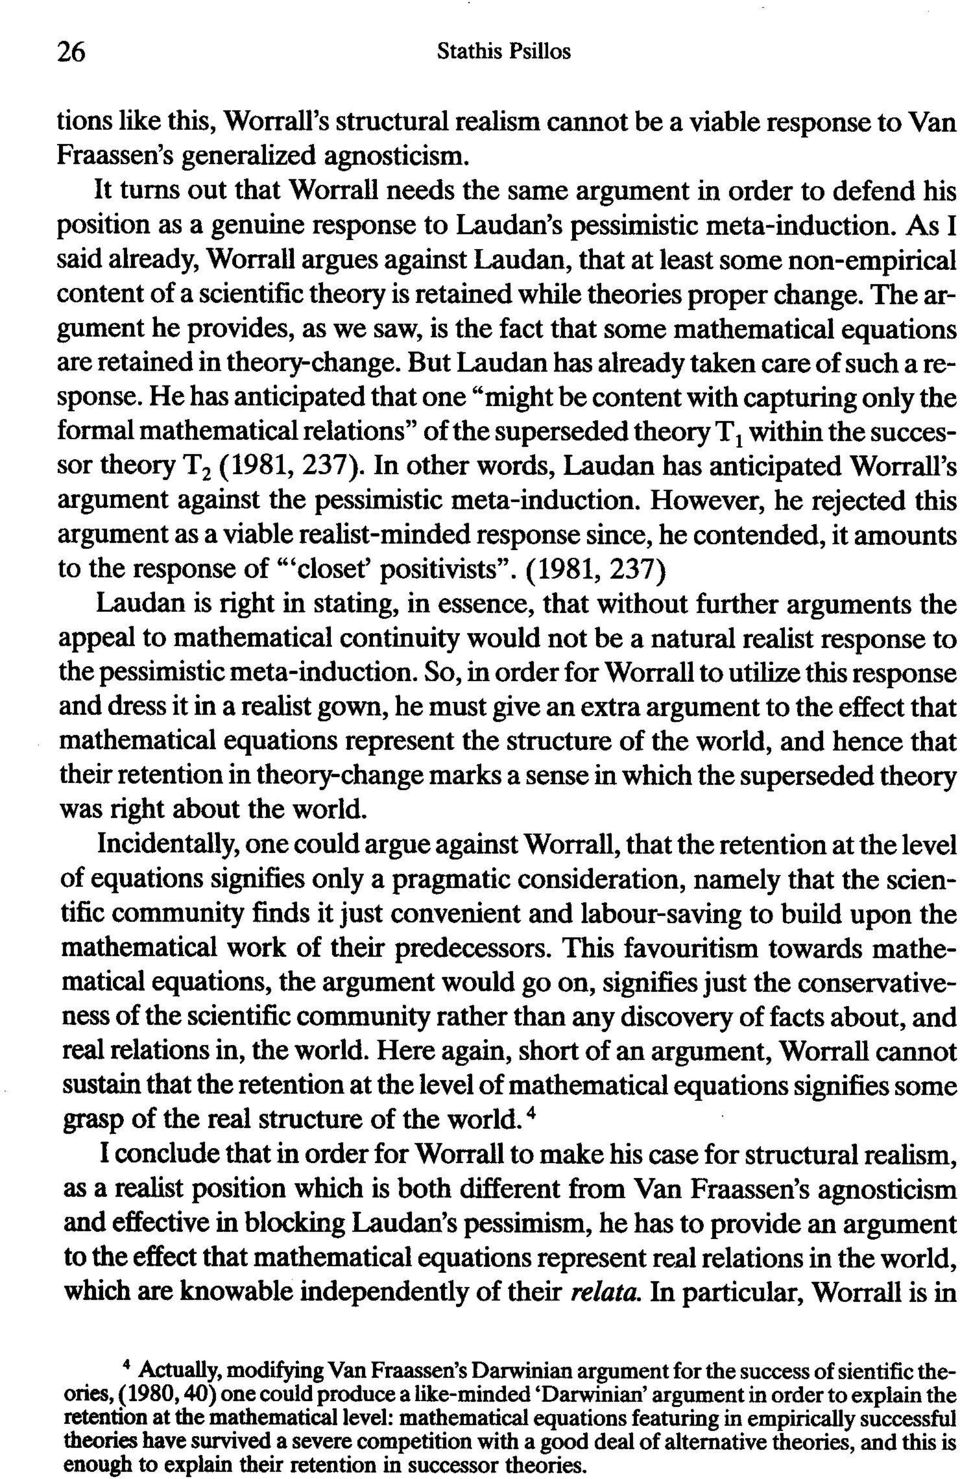 As I said already, Worrall argues against Laudan, that at least some non-empirical content of a scientific theory is retained while theories proper change.